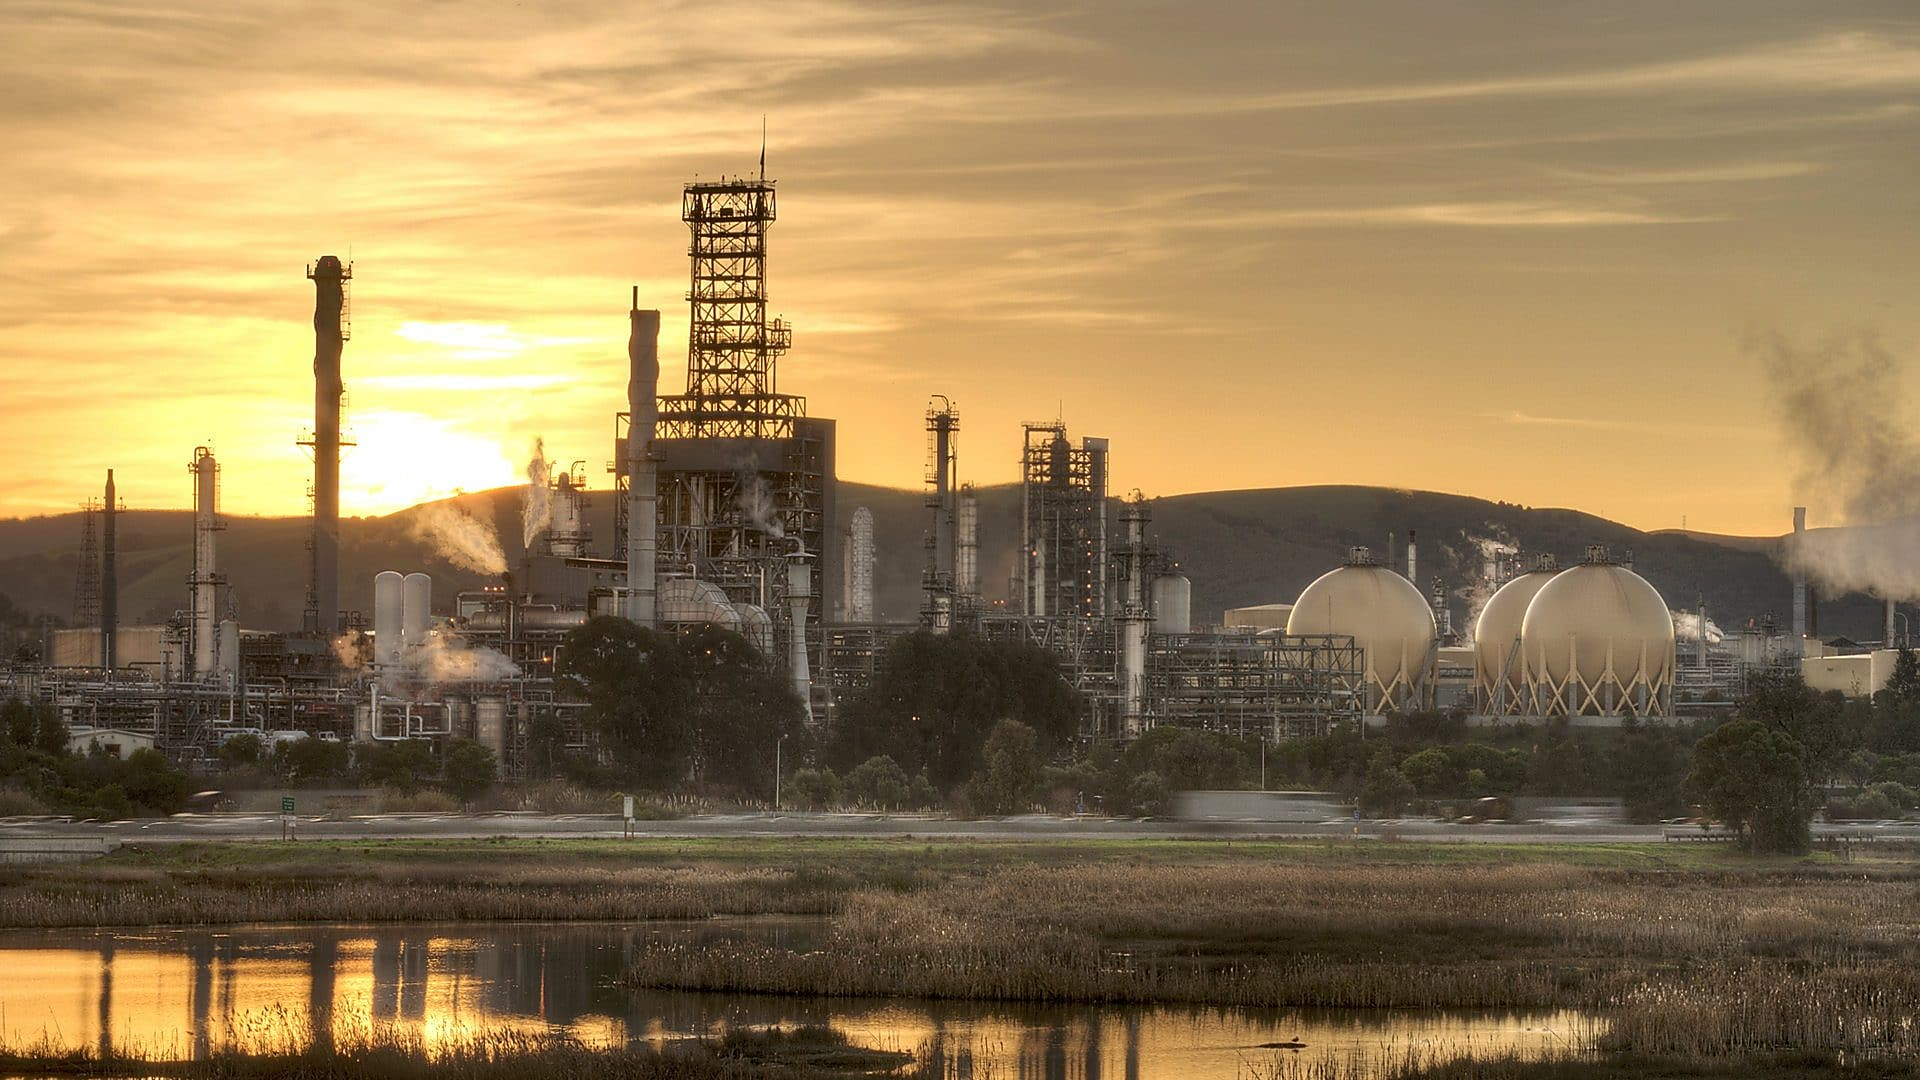 Shell agrees to sale of Martinez Refinery : Martinez News